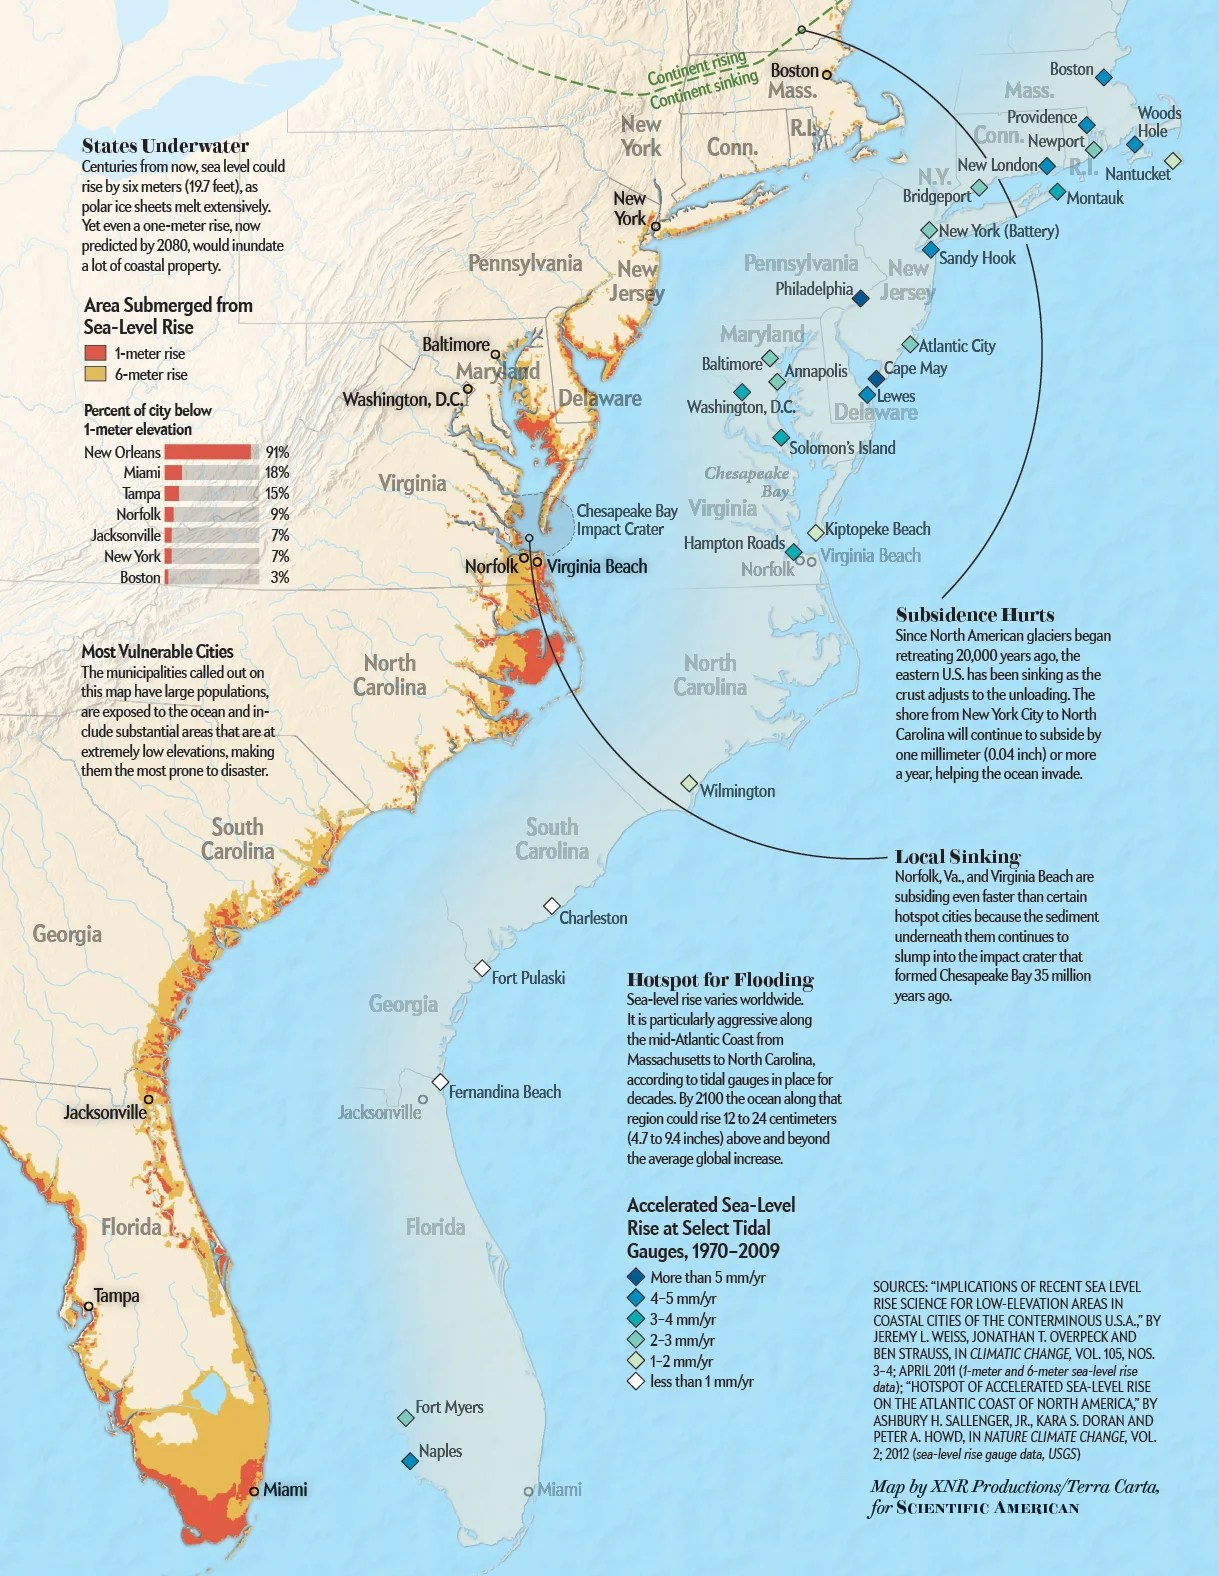 The East Coast Is Extremely Vulnerable To Hurricane